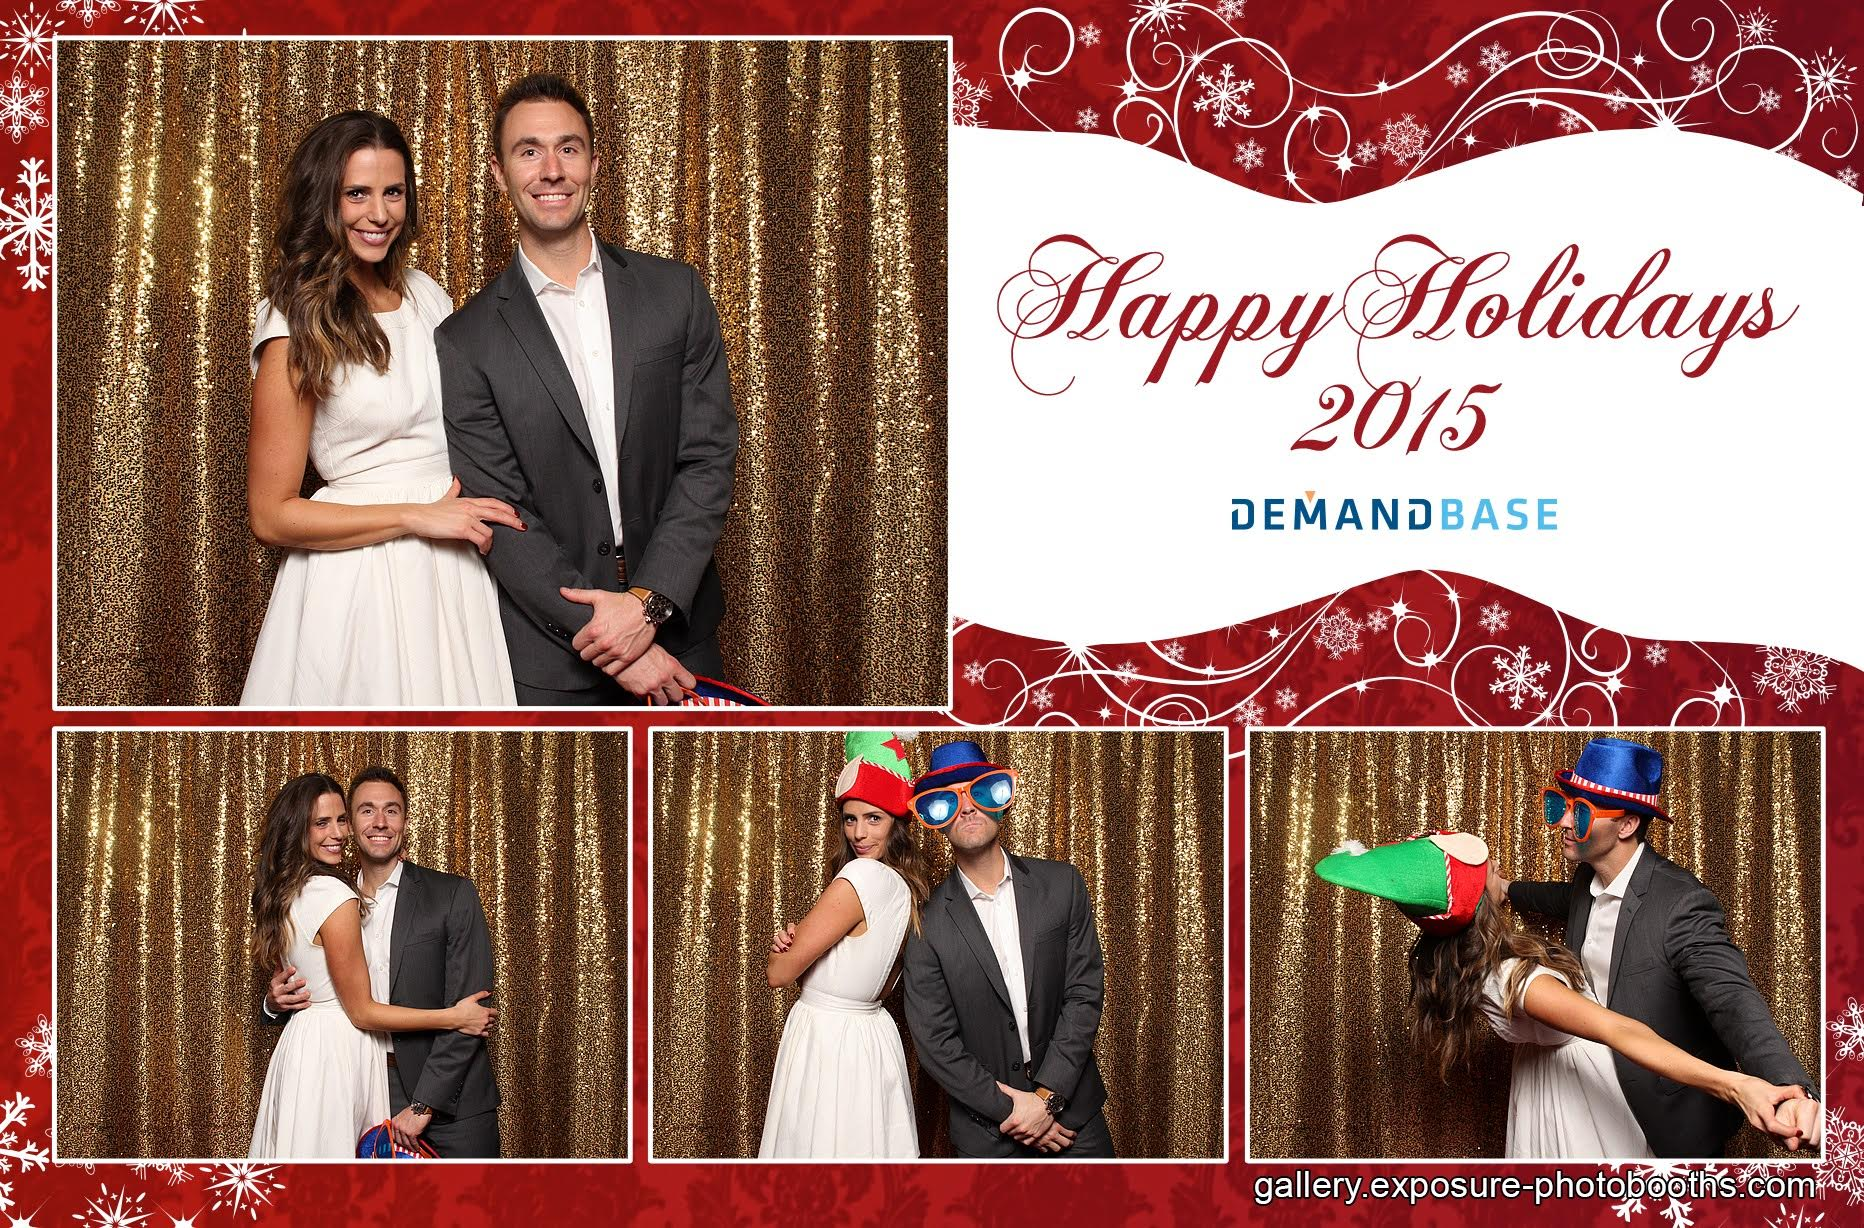 Avoid These Holiday Party Photo Booth Mistakes